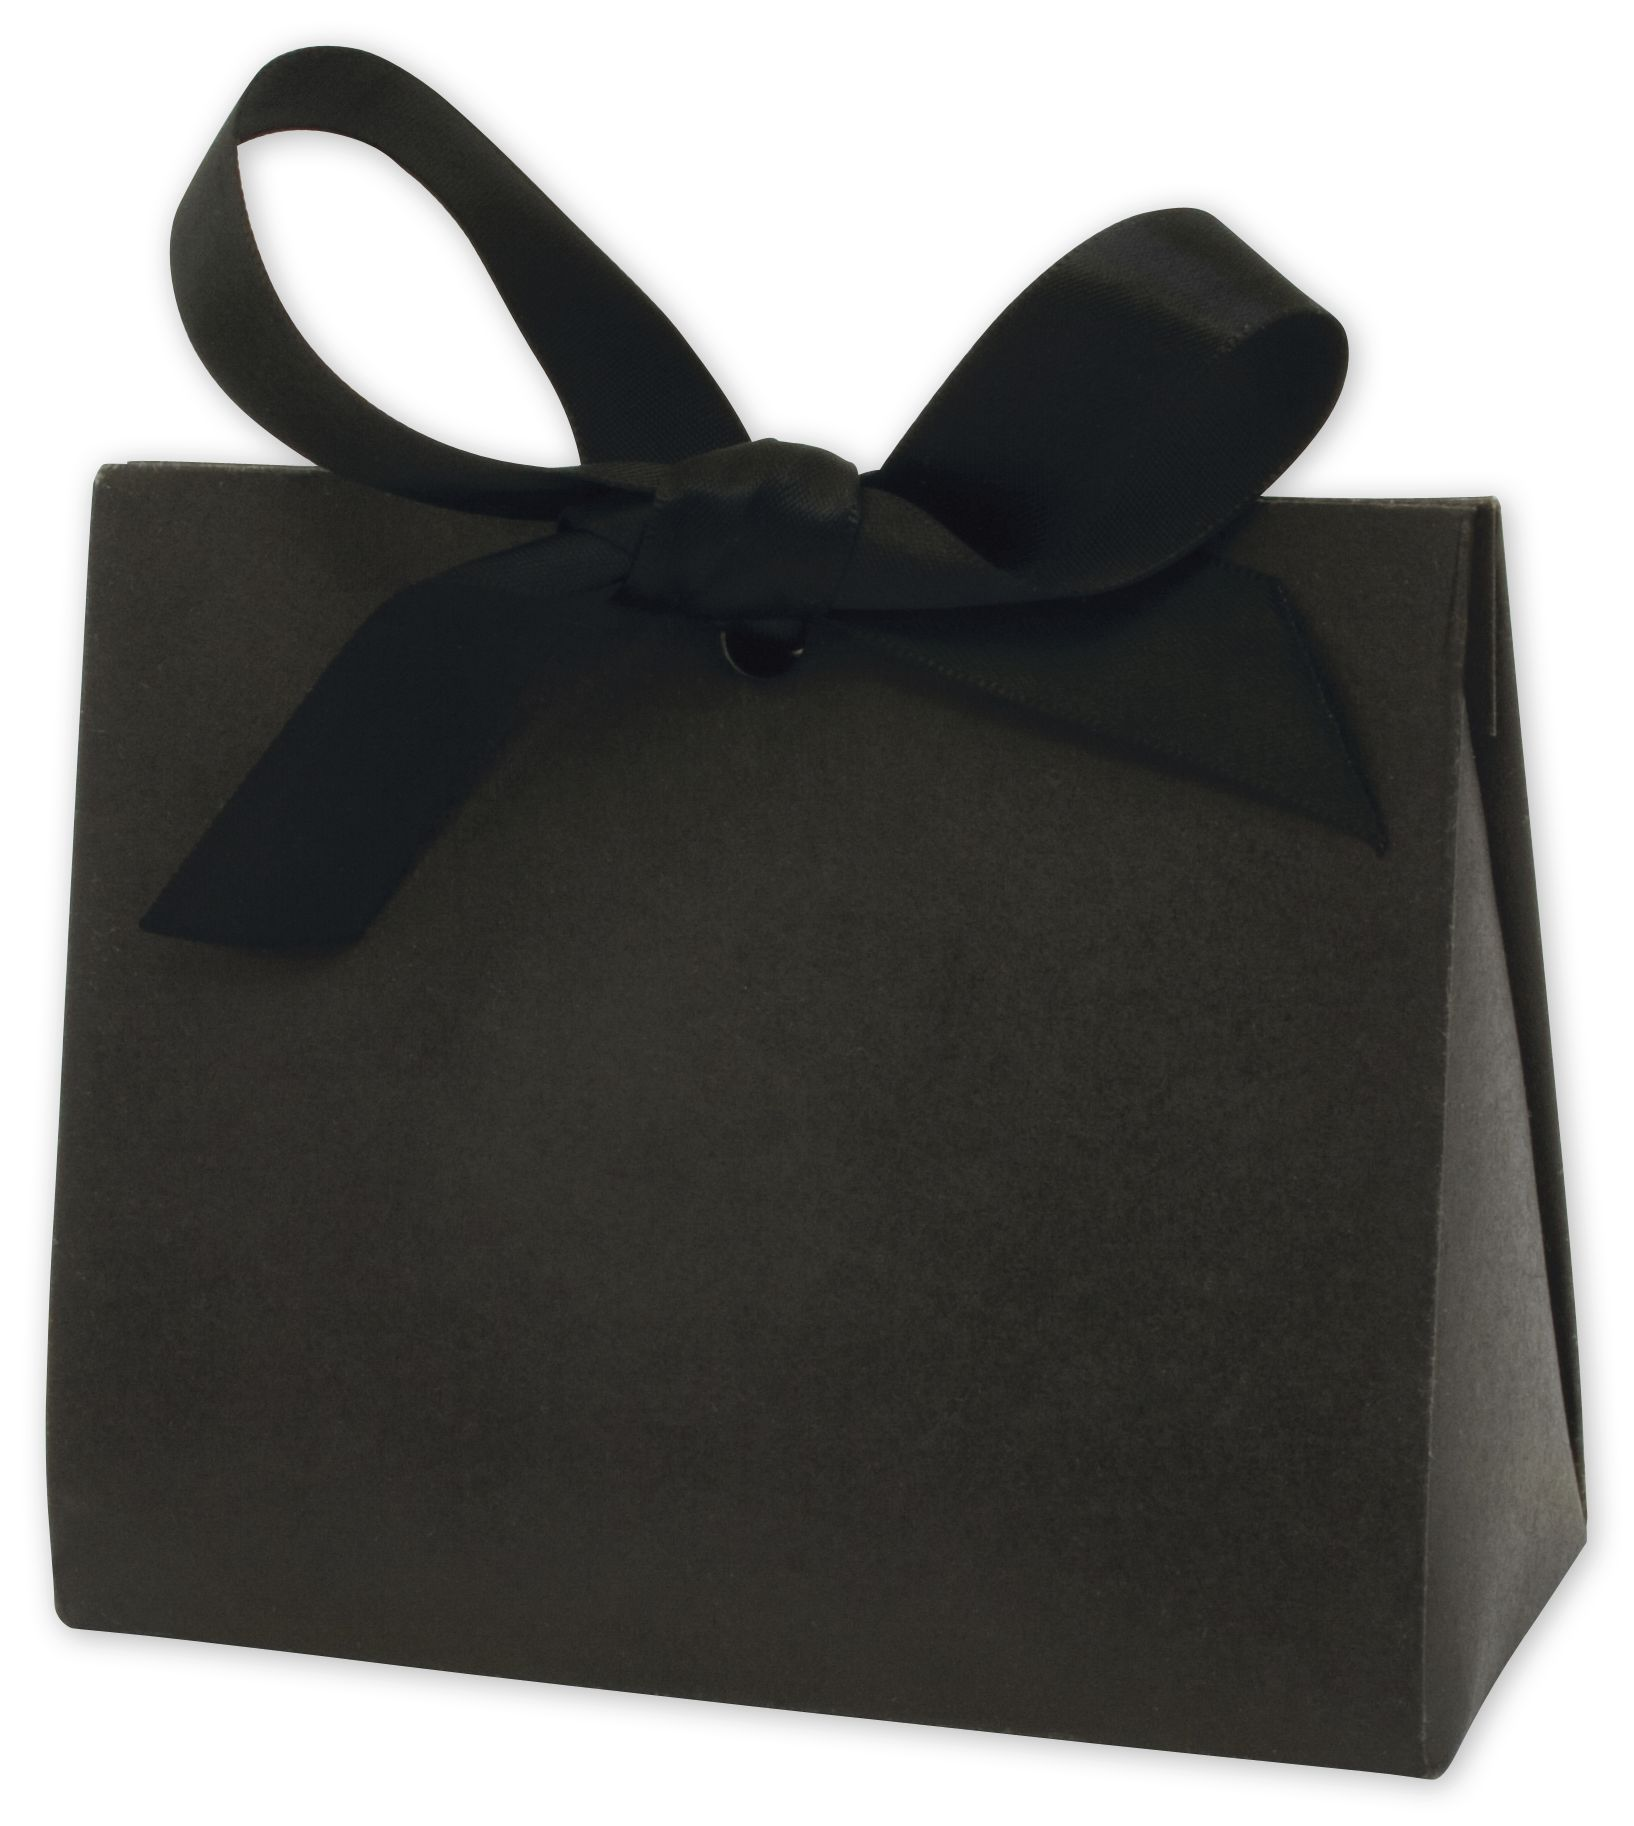 Black Kraft Purse Style Gift Card Holders   Bags and Bows